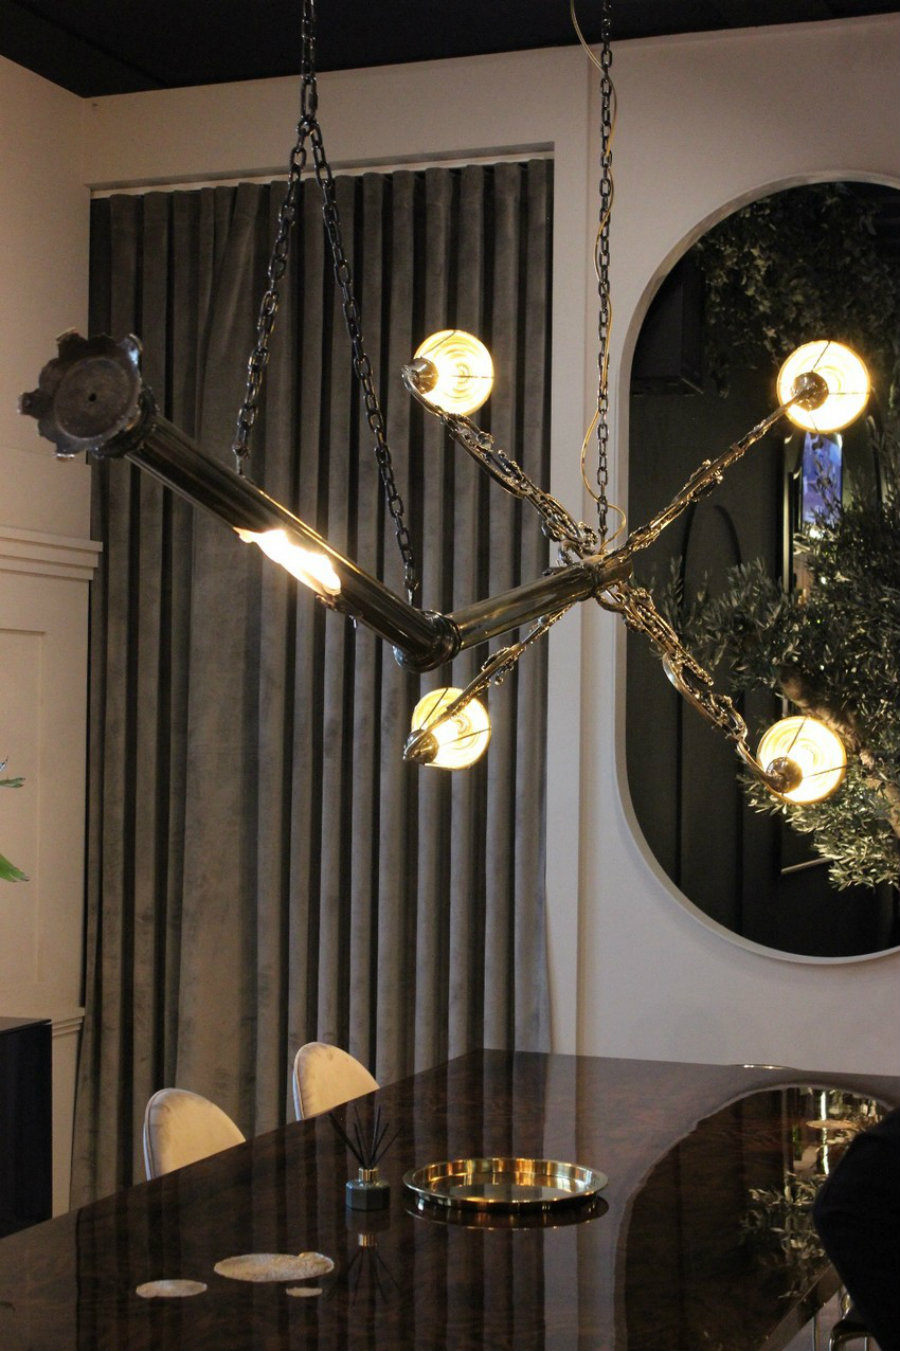 maison et objet MAISON ET OBJET : A LOOK INTO SOME OF THE NEW PIECES lumiere suspension lamp